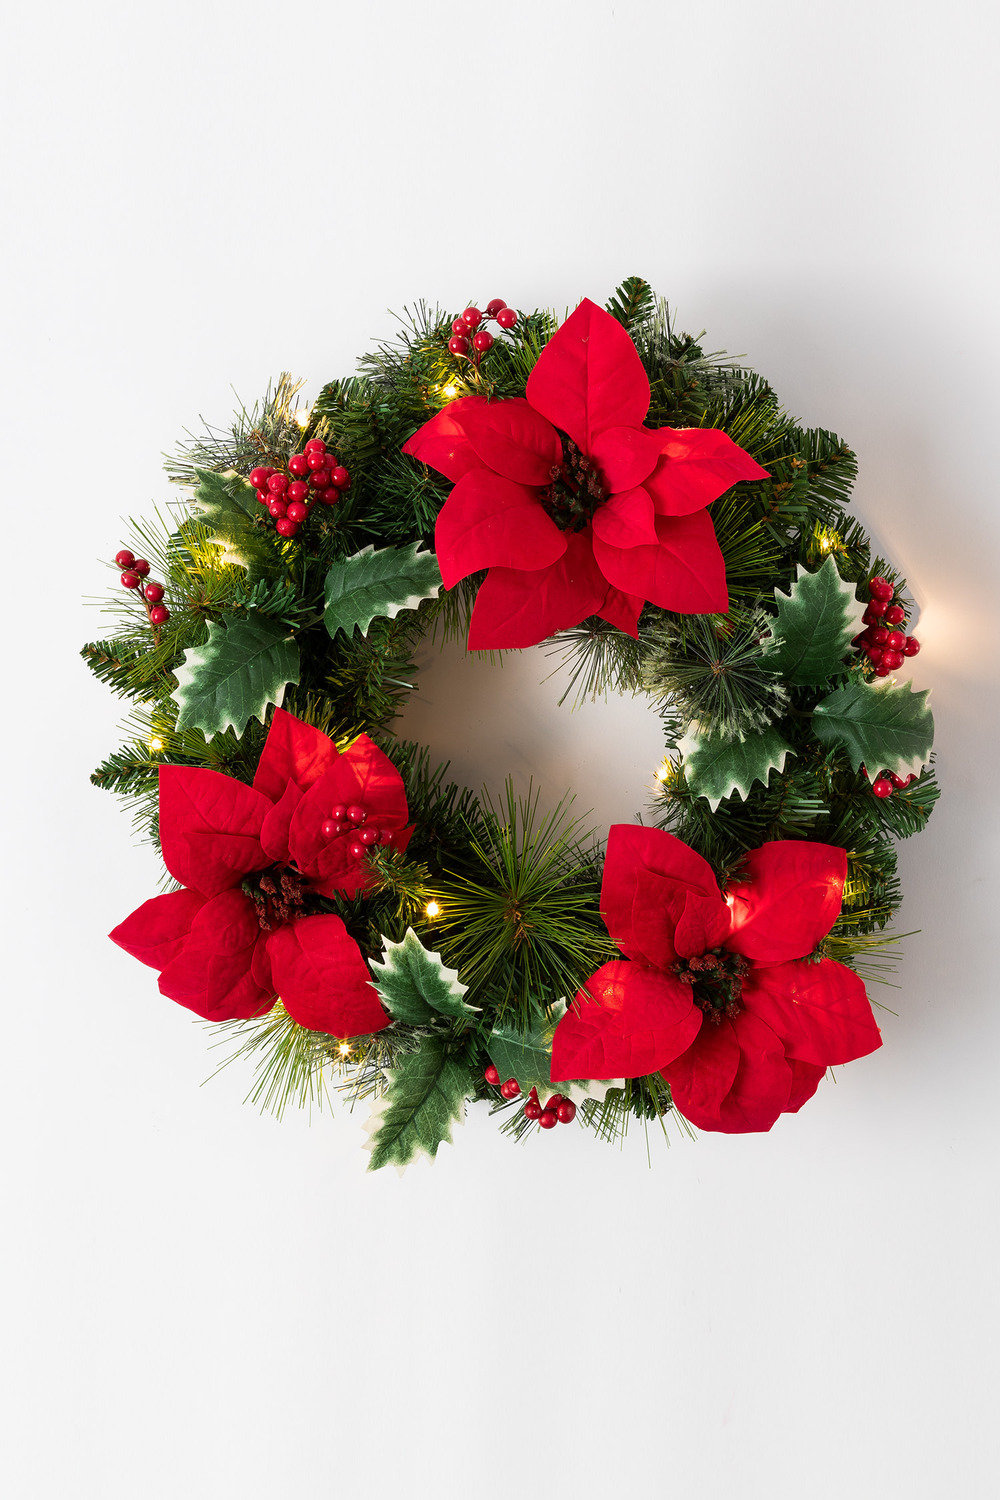 Prelit Christmas Wreath.Prelit Christmas Wreath